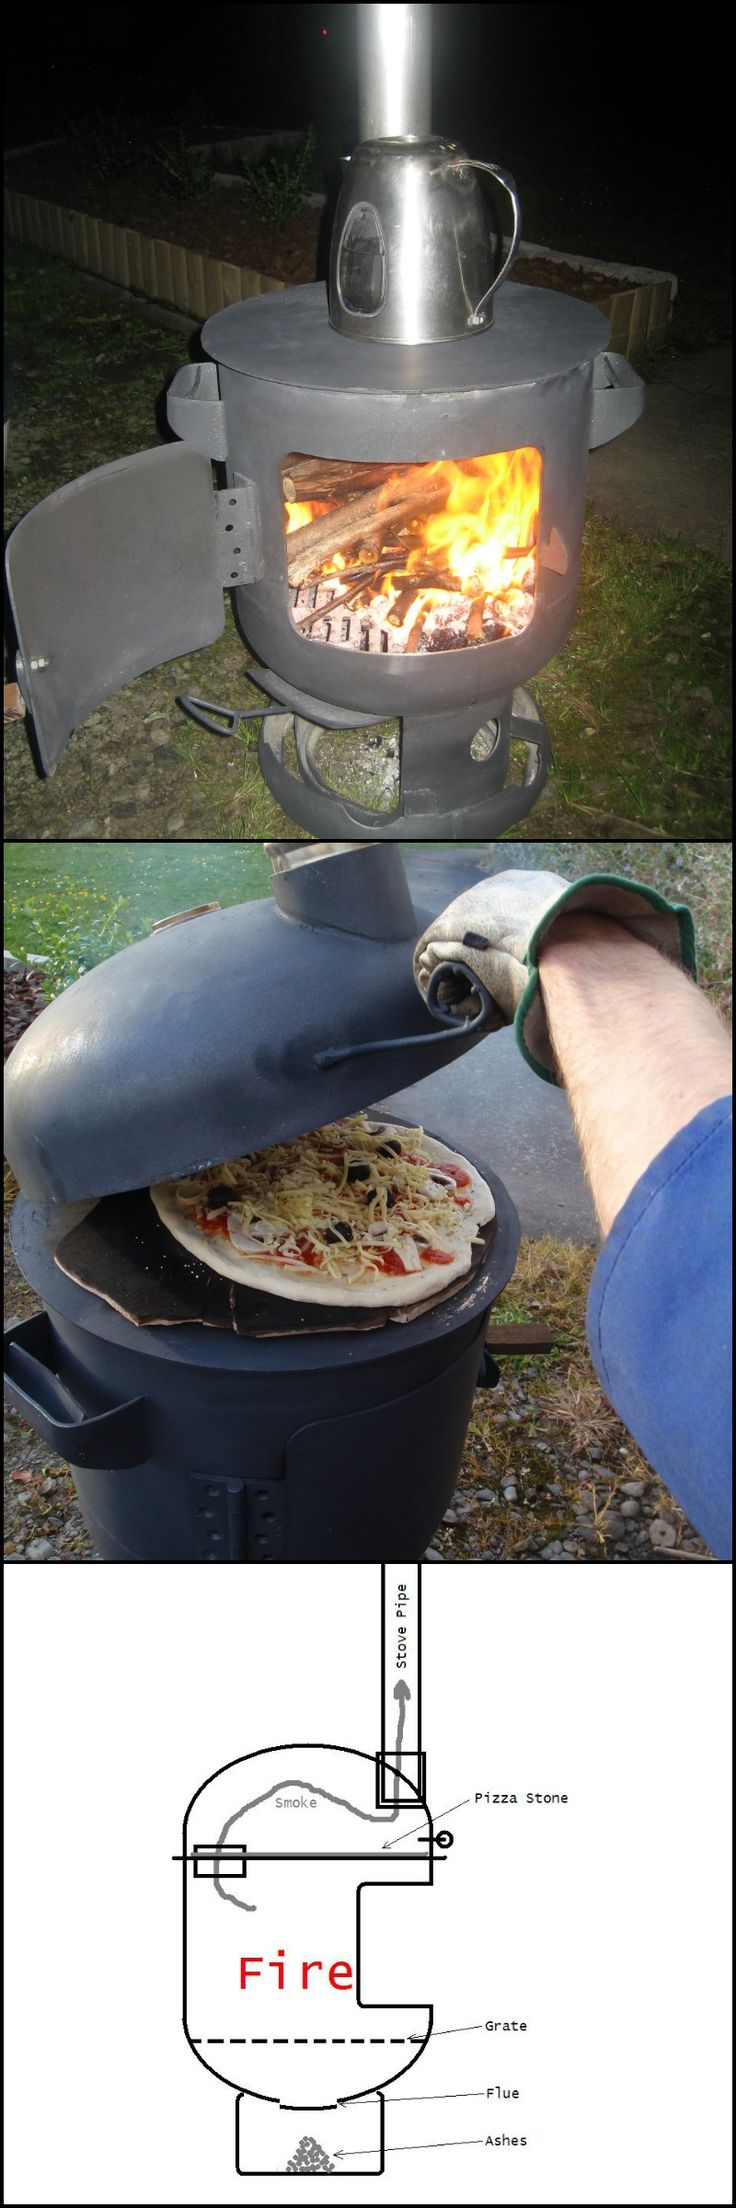 Pizza baked in wood fired ovens are the best and what's even better is you can make one at home!  Yes, there are a number of tutorials on stoves made from old propane bottles out there, but here's one that serves two purposes – it'a a pizza oven and a patio heater rolled into one!   http://diyprojects.ideas2live4.com/2016/04/07/pizza-oven-and-patio-heater-combo/  This tutorial provides clear, detailed steps on how you can turn a propane gas tank into a pizza oven/patio heater.